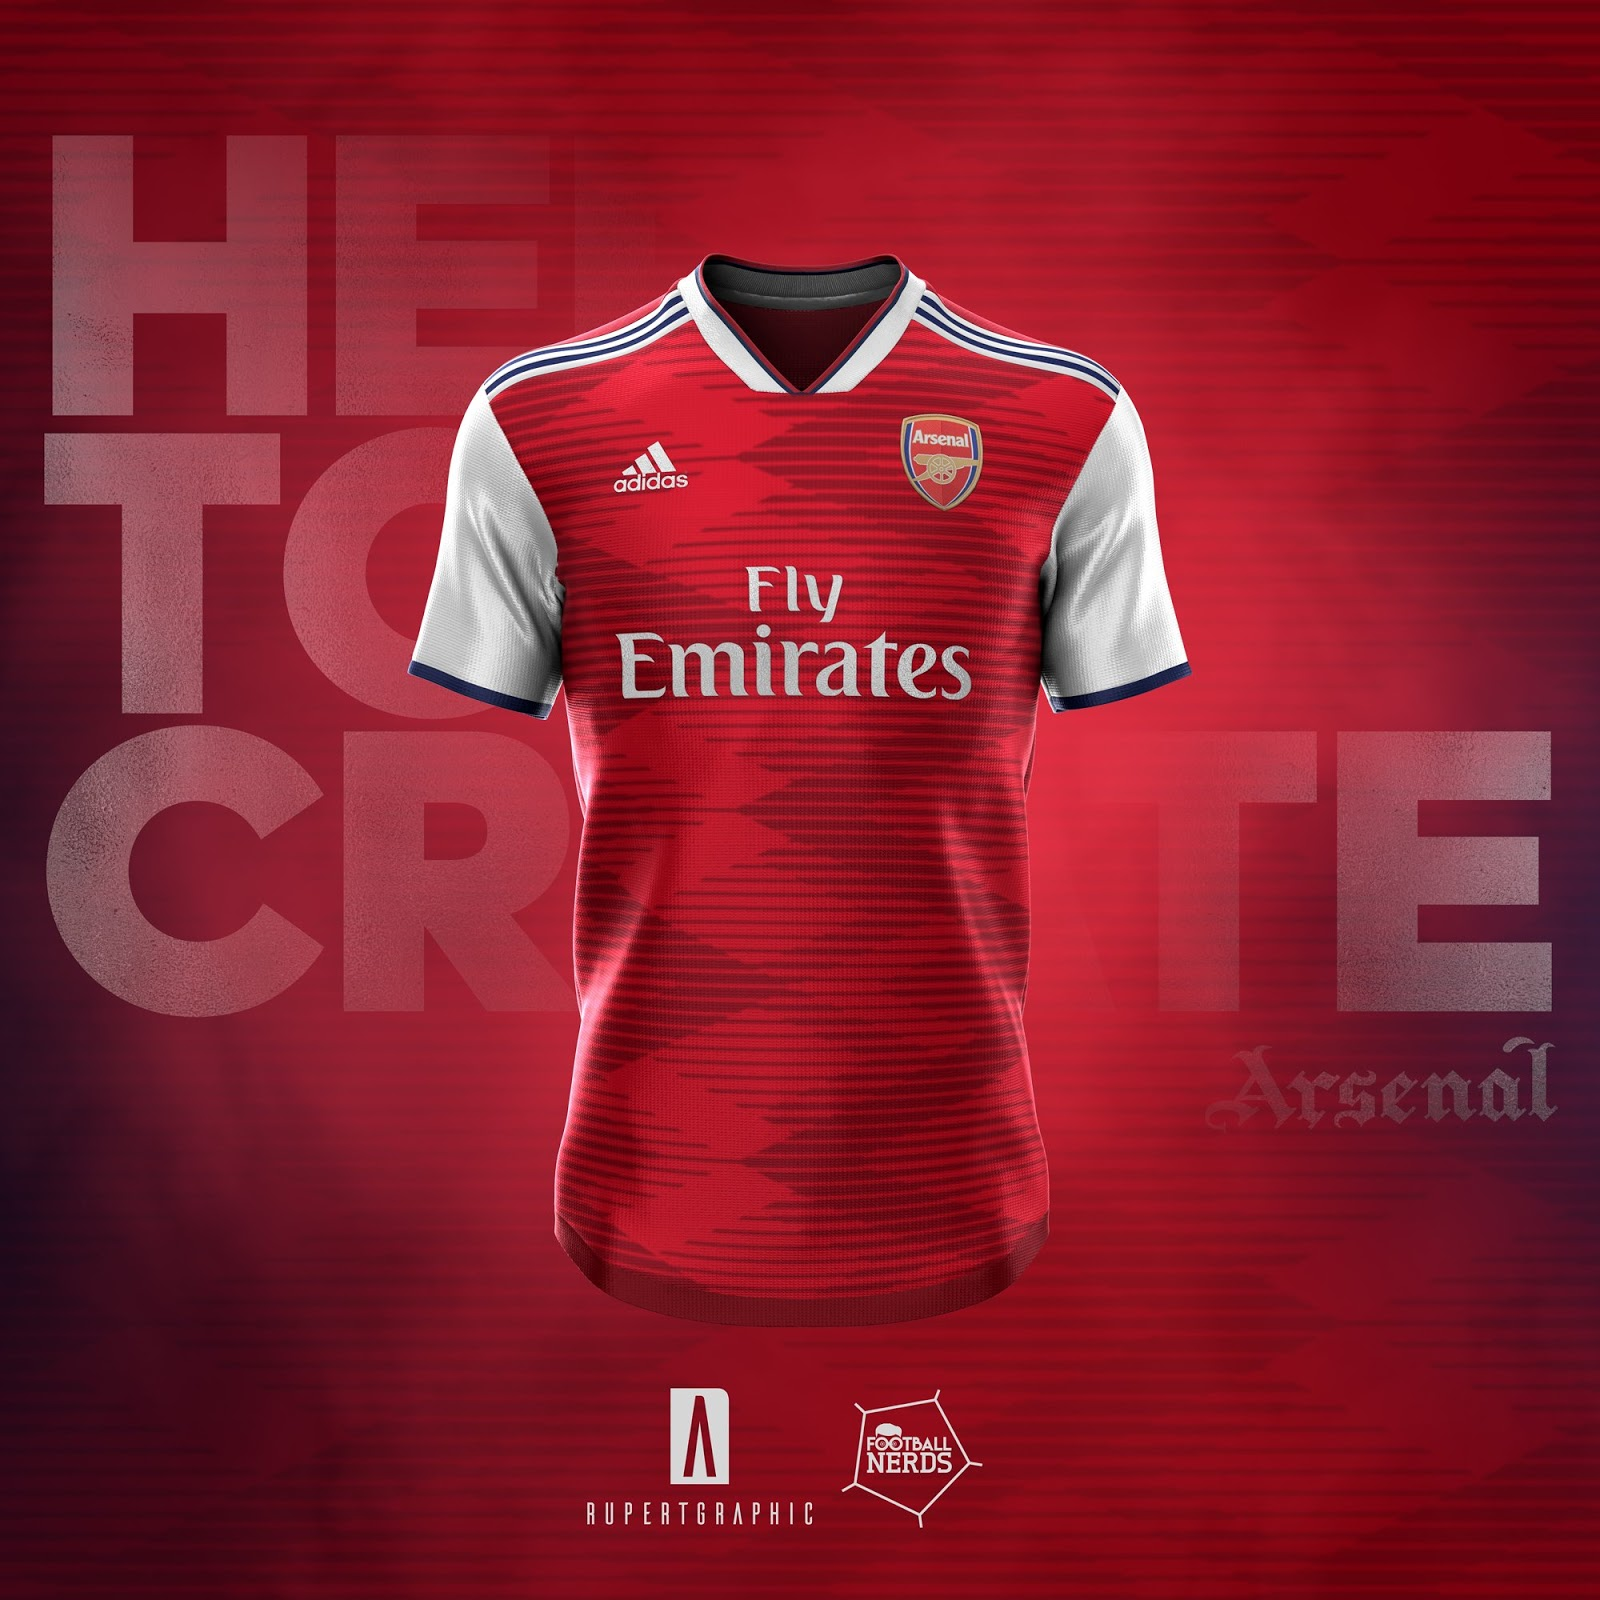 4c349d3b379 Stunning Adidas Arsenal 19-20 Home, Away & Third Kit Concepts by ...